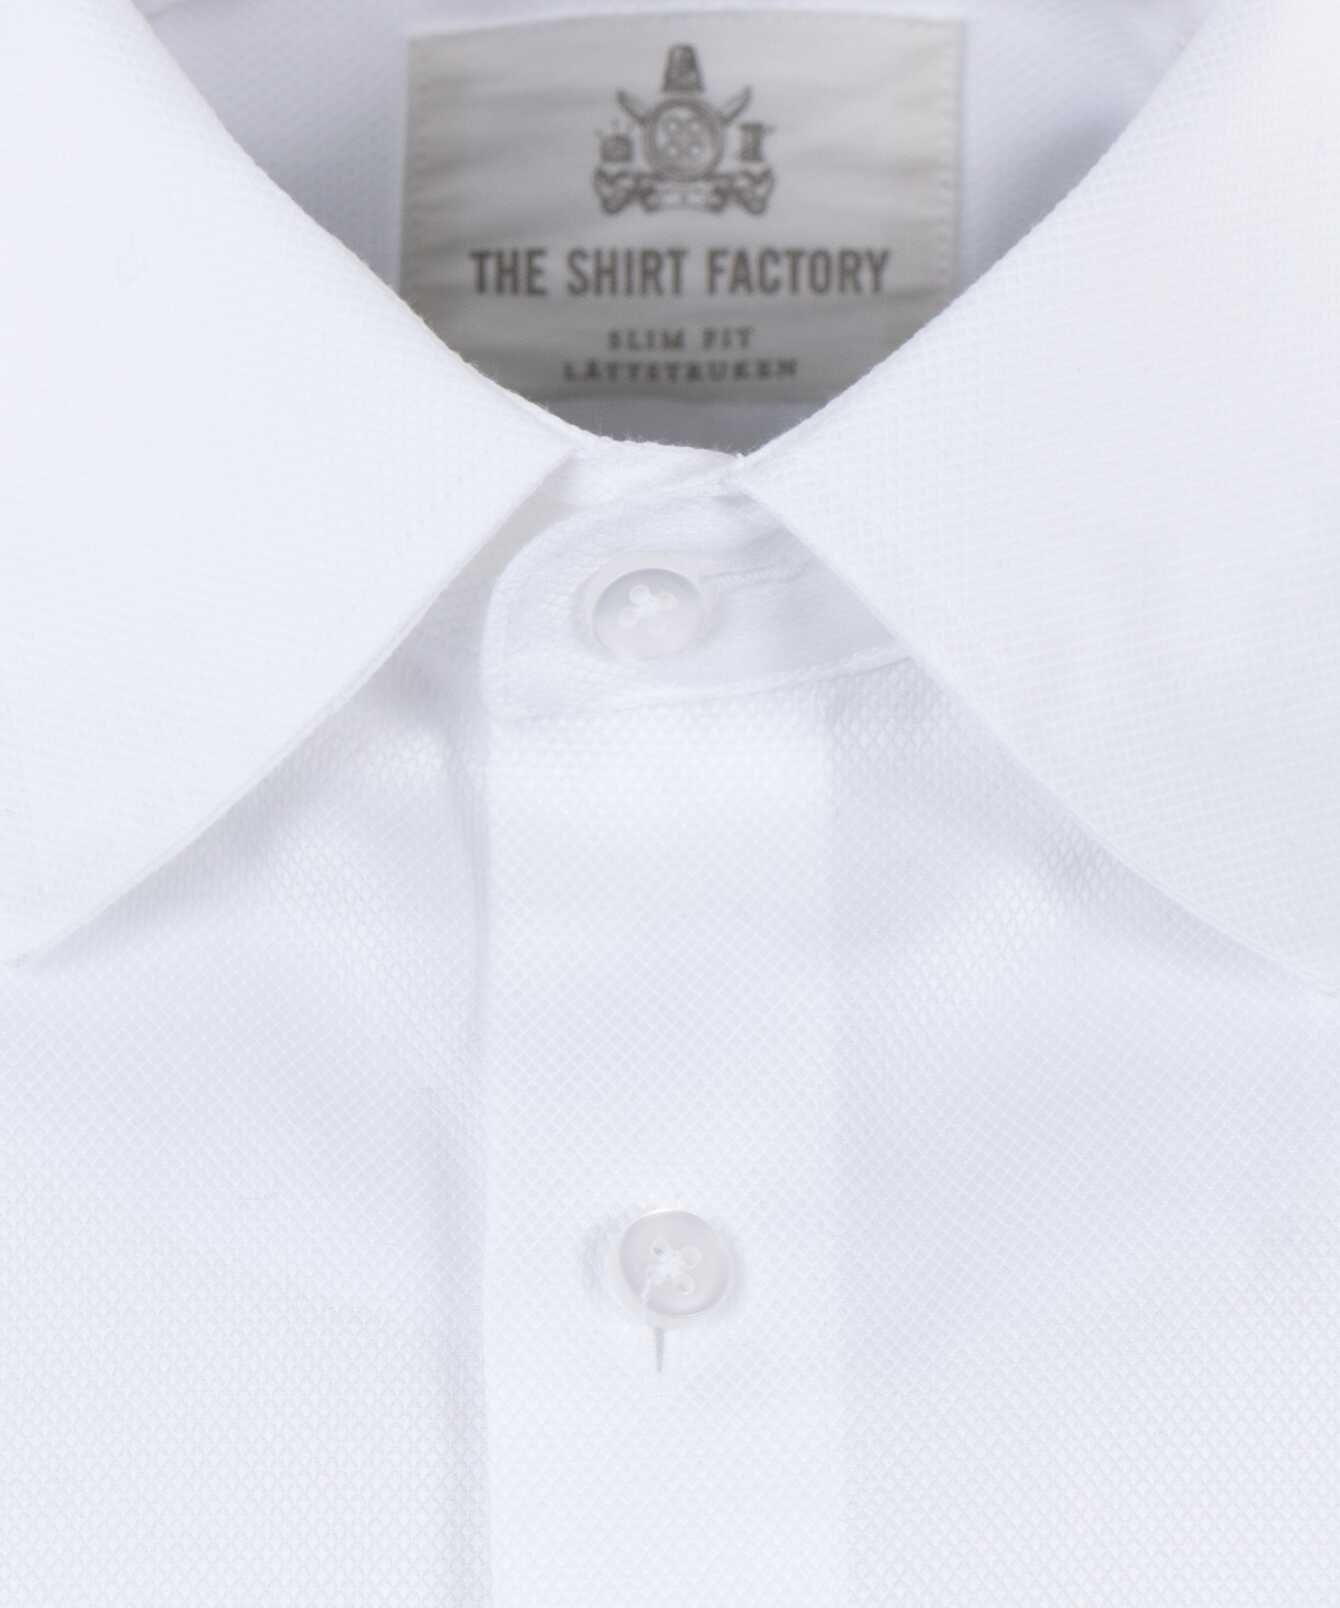 Shirt Midtown The Shirt Factory